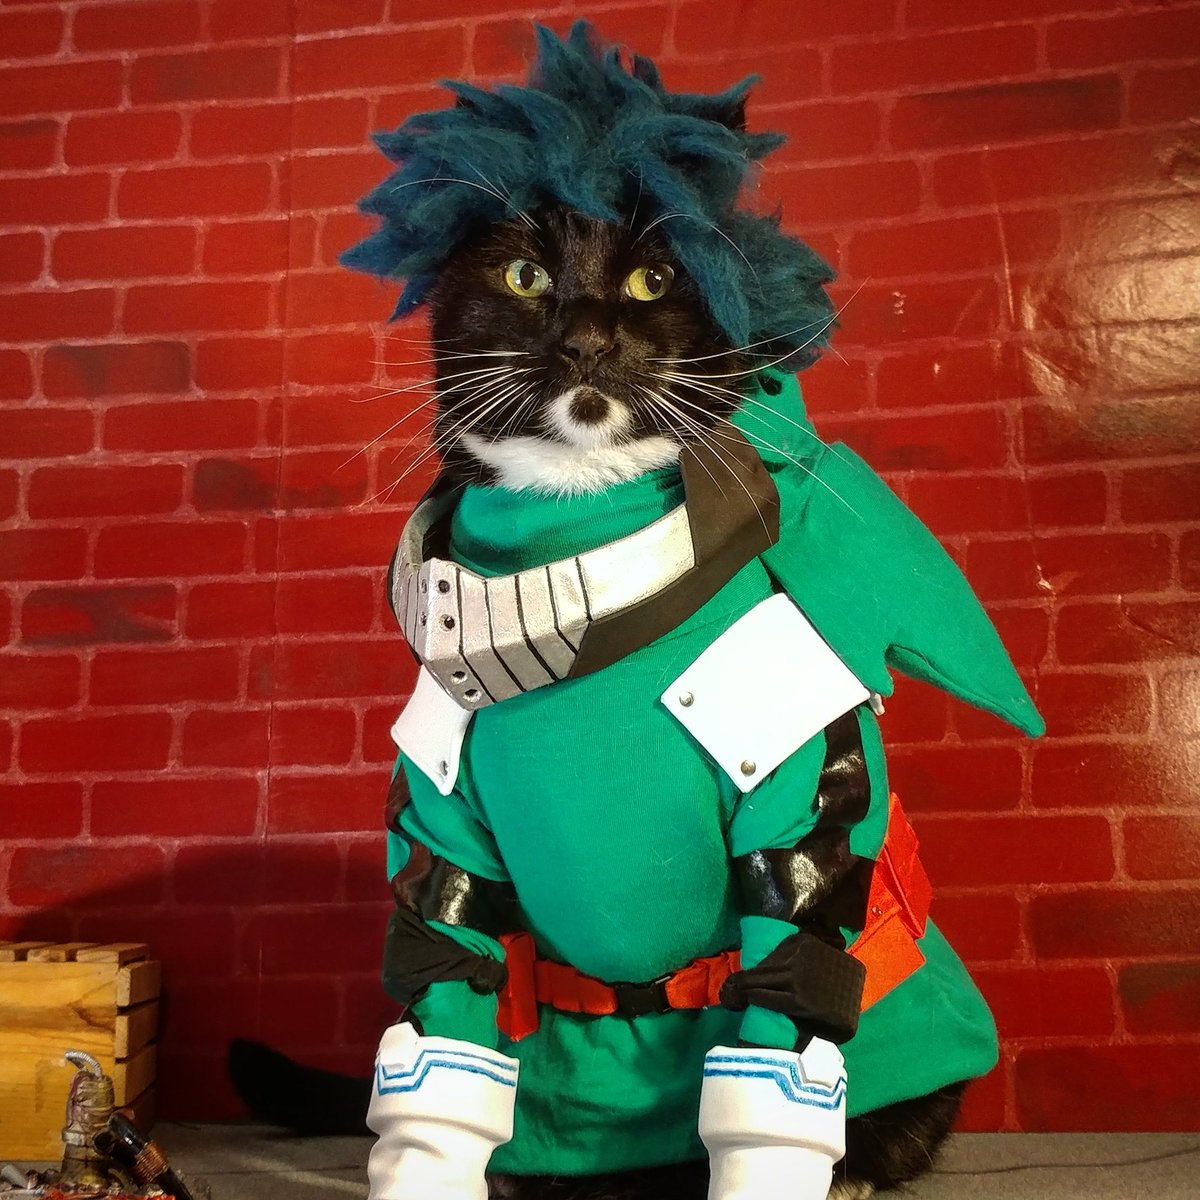 Happiest of Birthday's Deku, from this Meowdoria to you!  #MyHeroAcademia <br>http://pic.twitter.com/Qg6s4pNYmQ